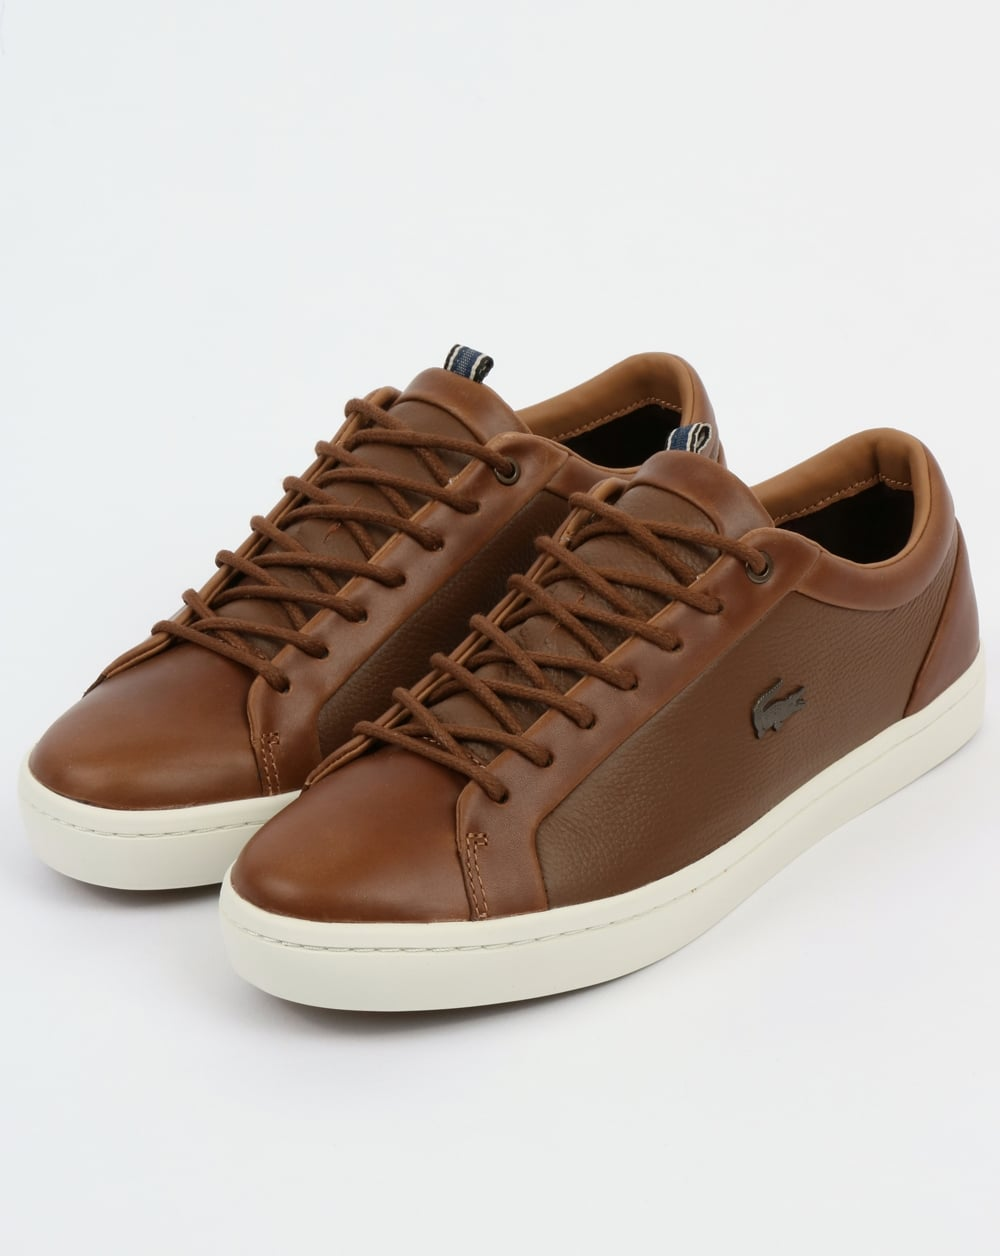 9df3685a3cefd Lacoste Footwear Straightset Trainers Light Brown